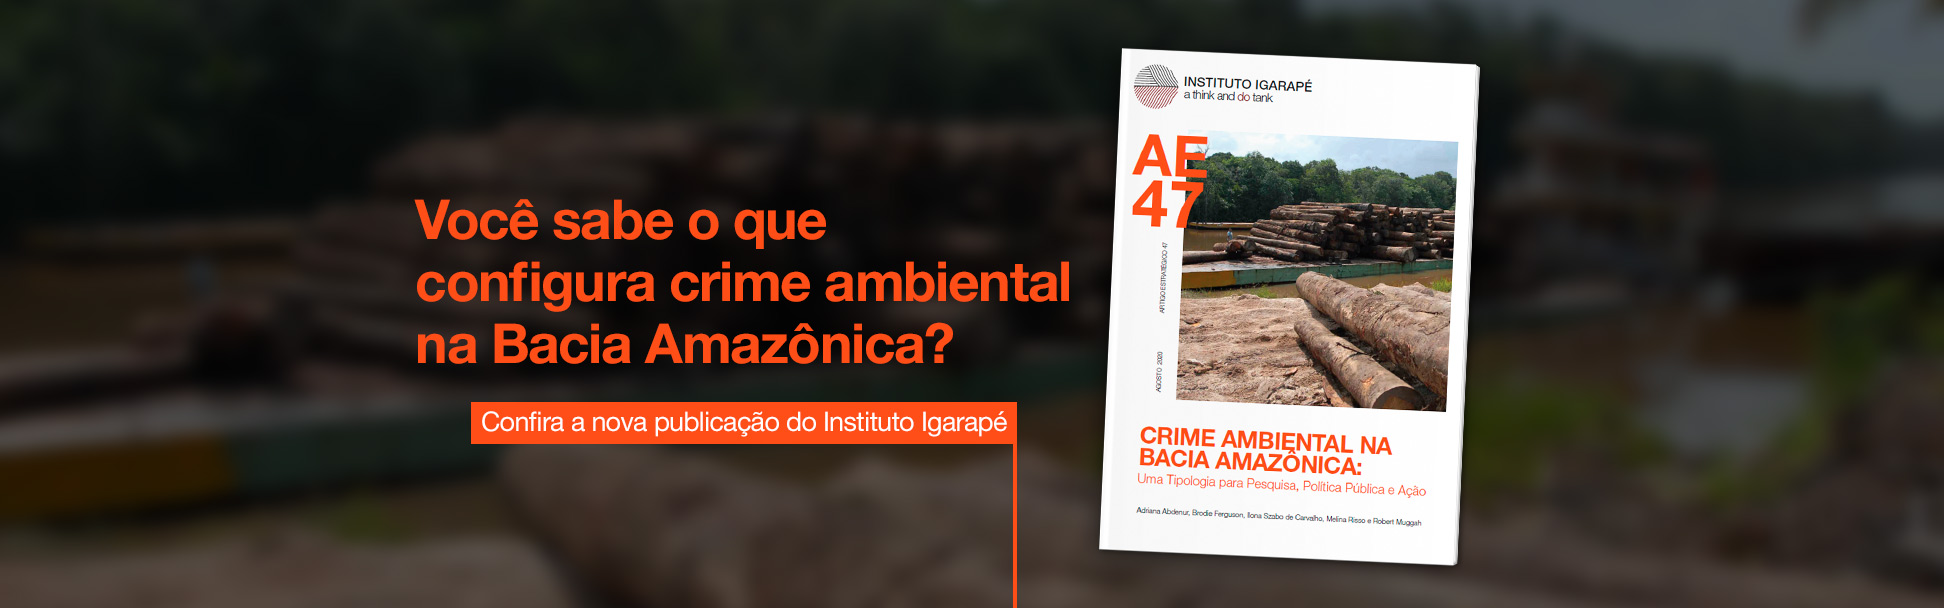 crime-ambiental-Amazonia-banner